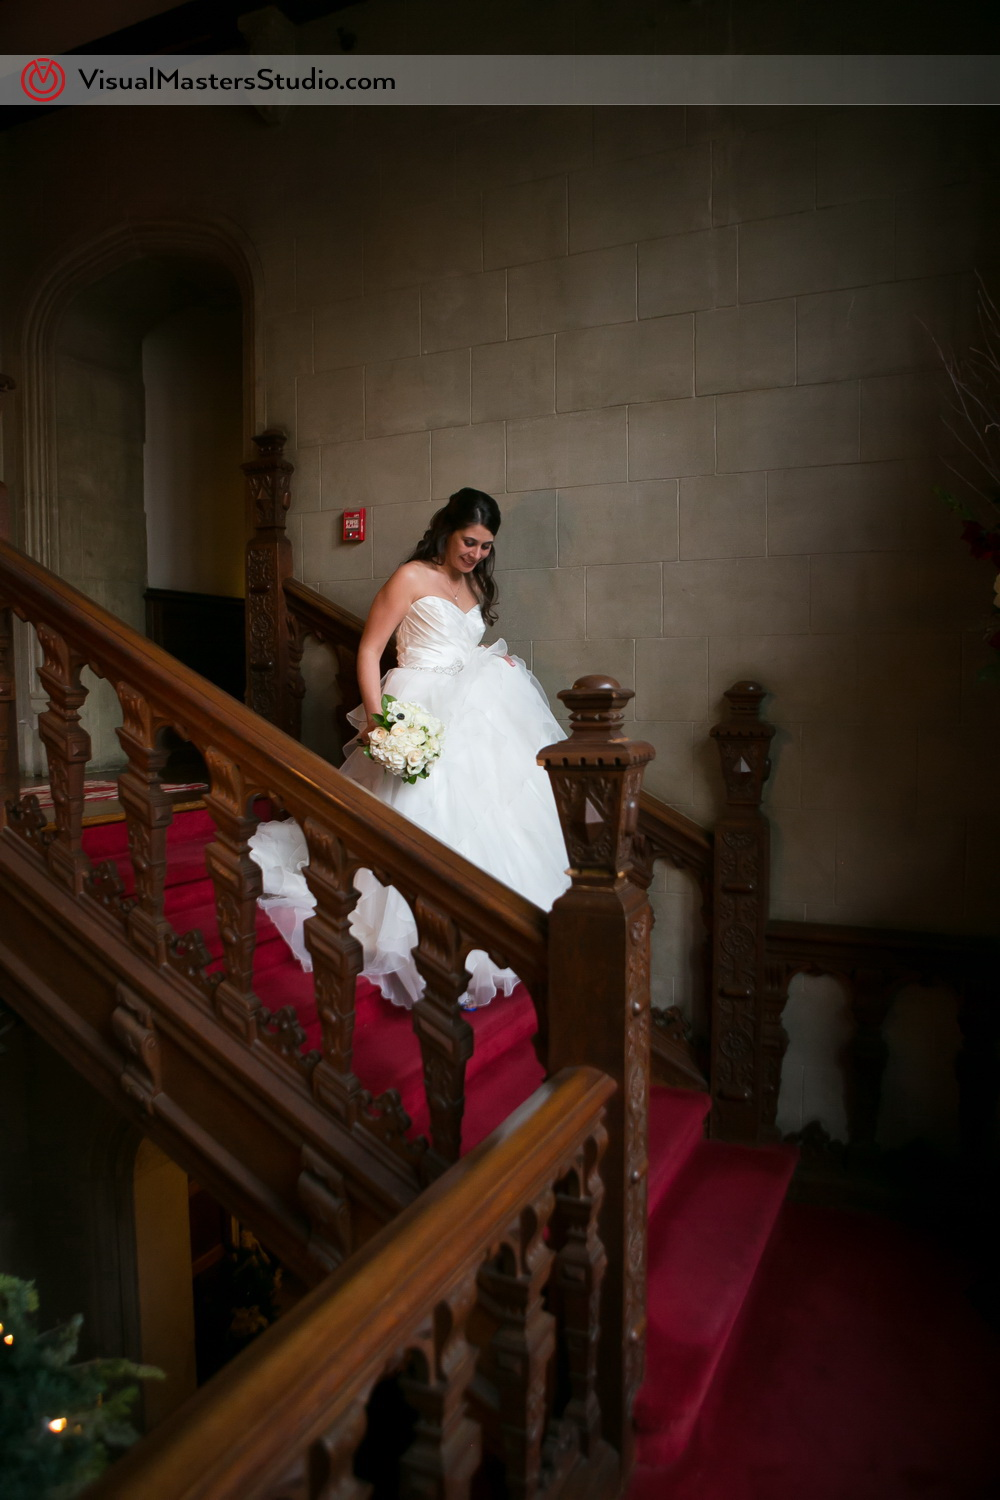 Candid Shot of the Bride at The Castle at Skylands Manor by Visual Masters